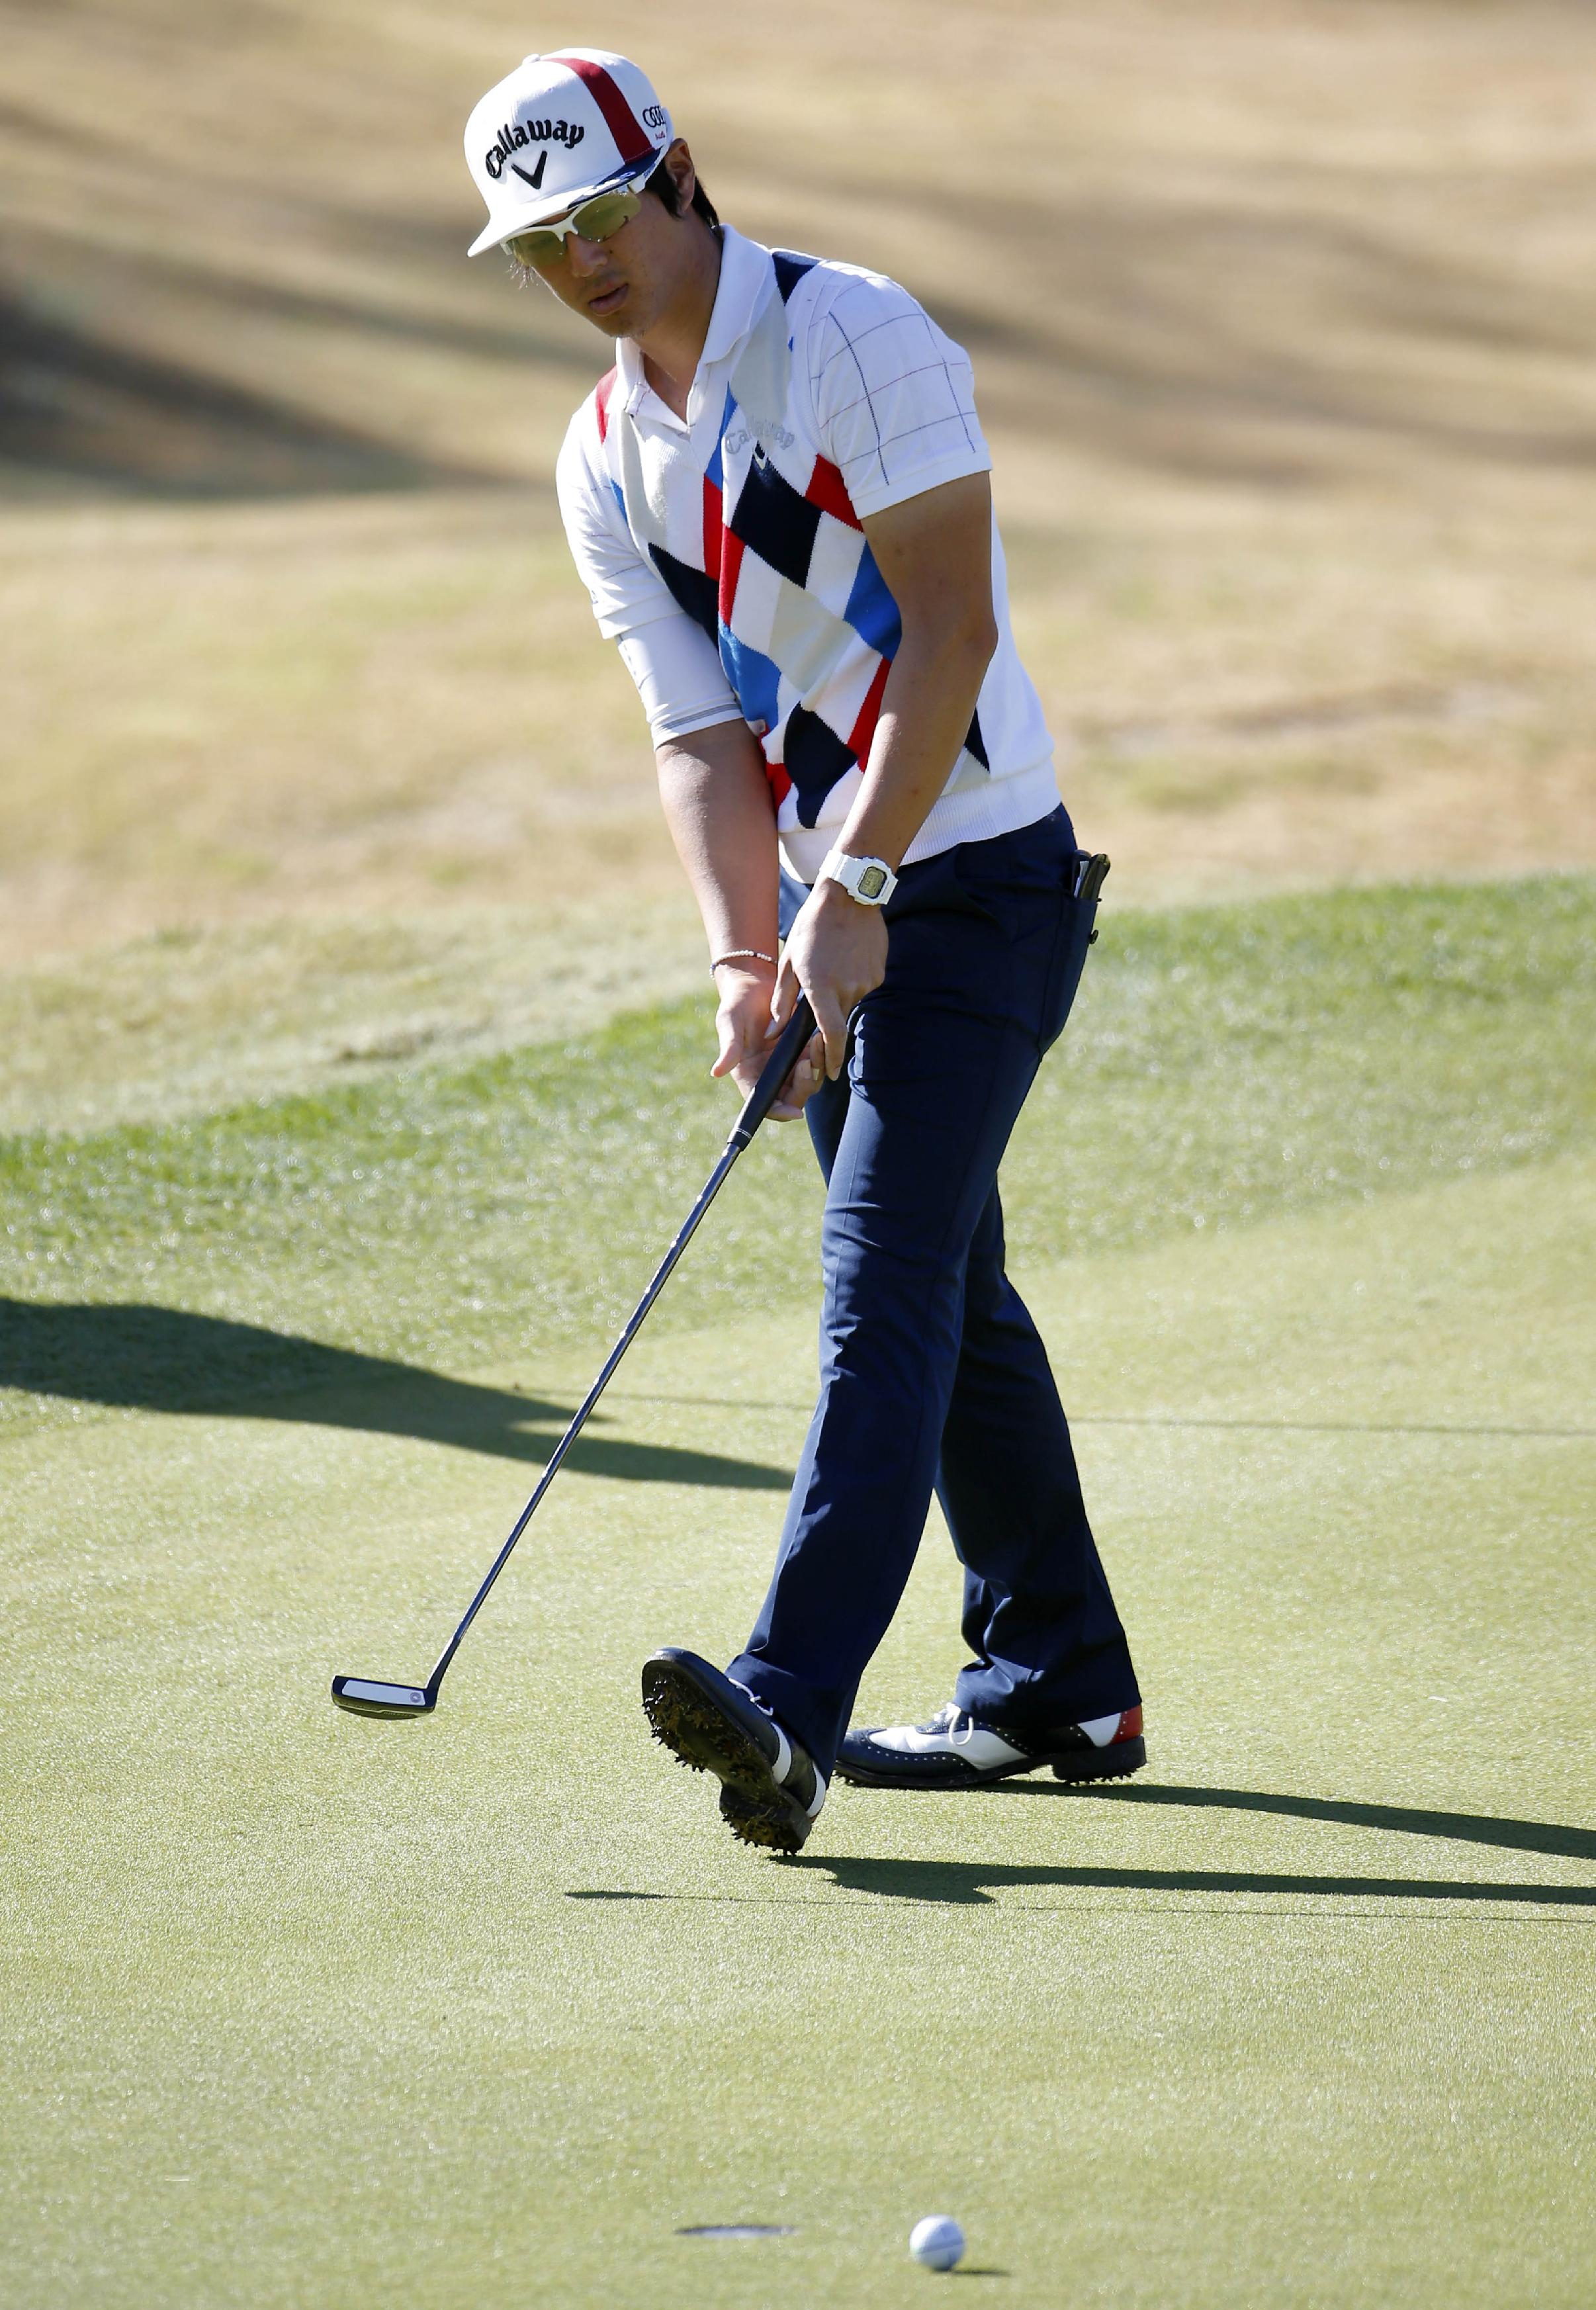 Ryo Ishikawa, of Japan, misses a birdie putt on the eighth green during the third round of the Humana Challenge PGA golf tournament on the Nicklaus Private course at PGA West, Saturday, Jan. 18, 2014, in La Quinta, Calif